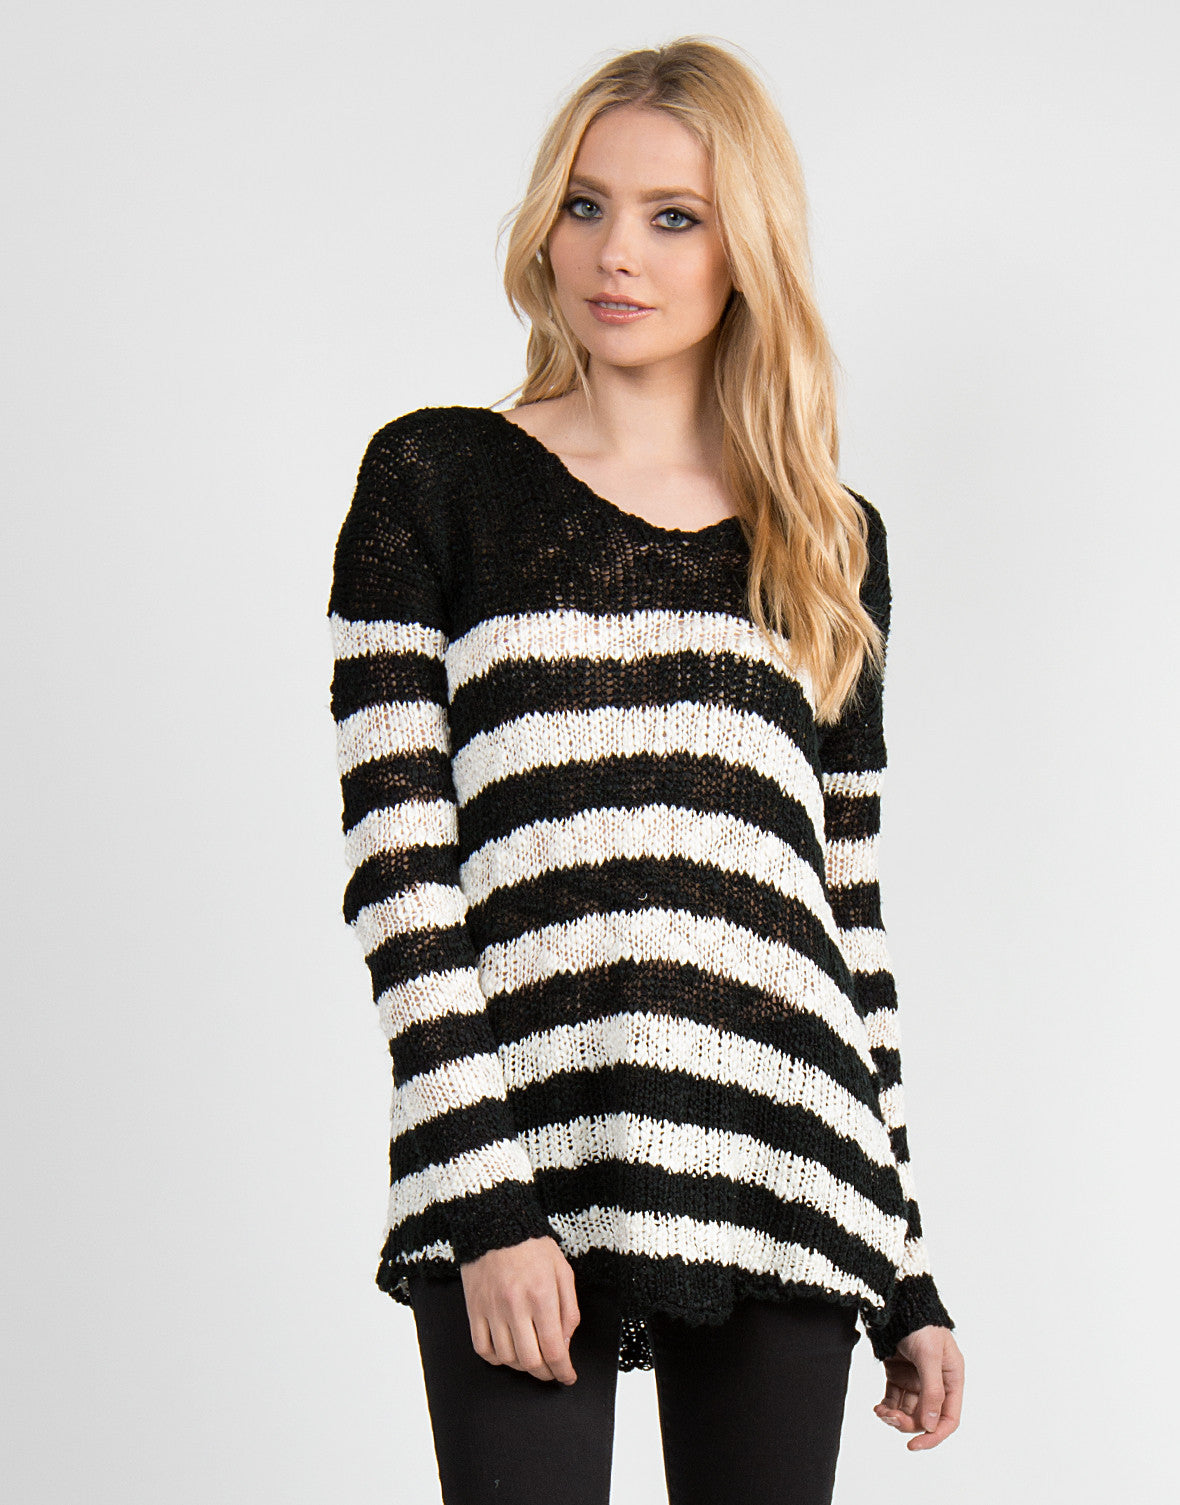 Dreamy Black and White Striped Sweater